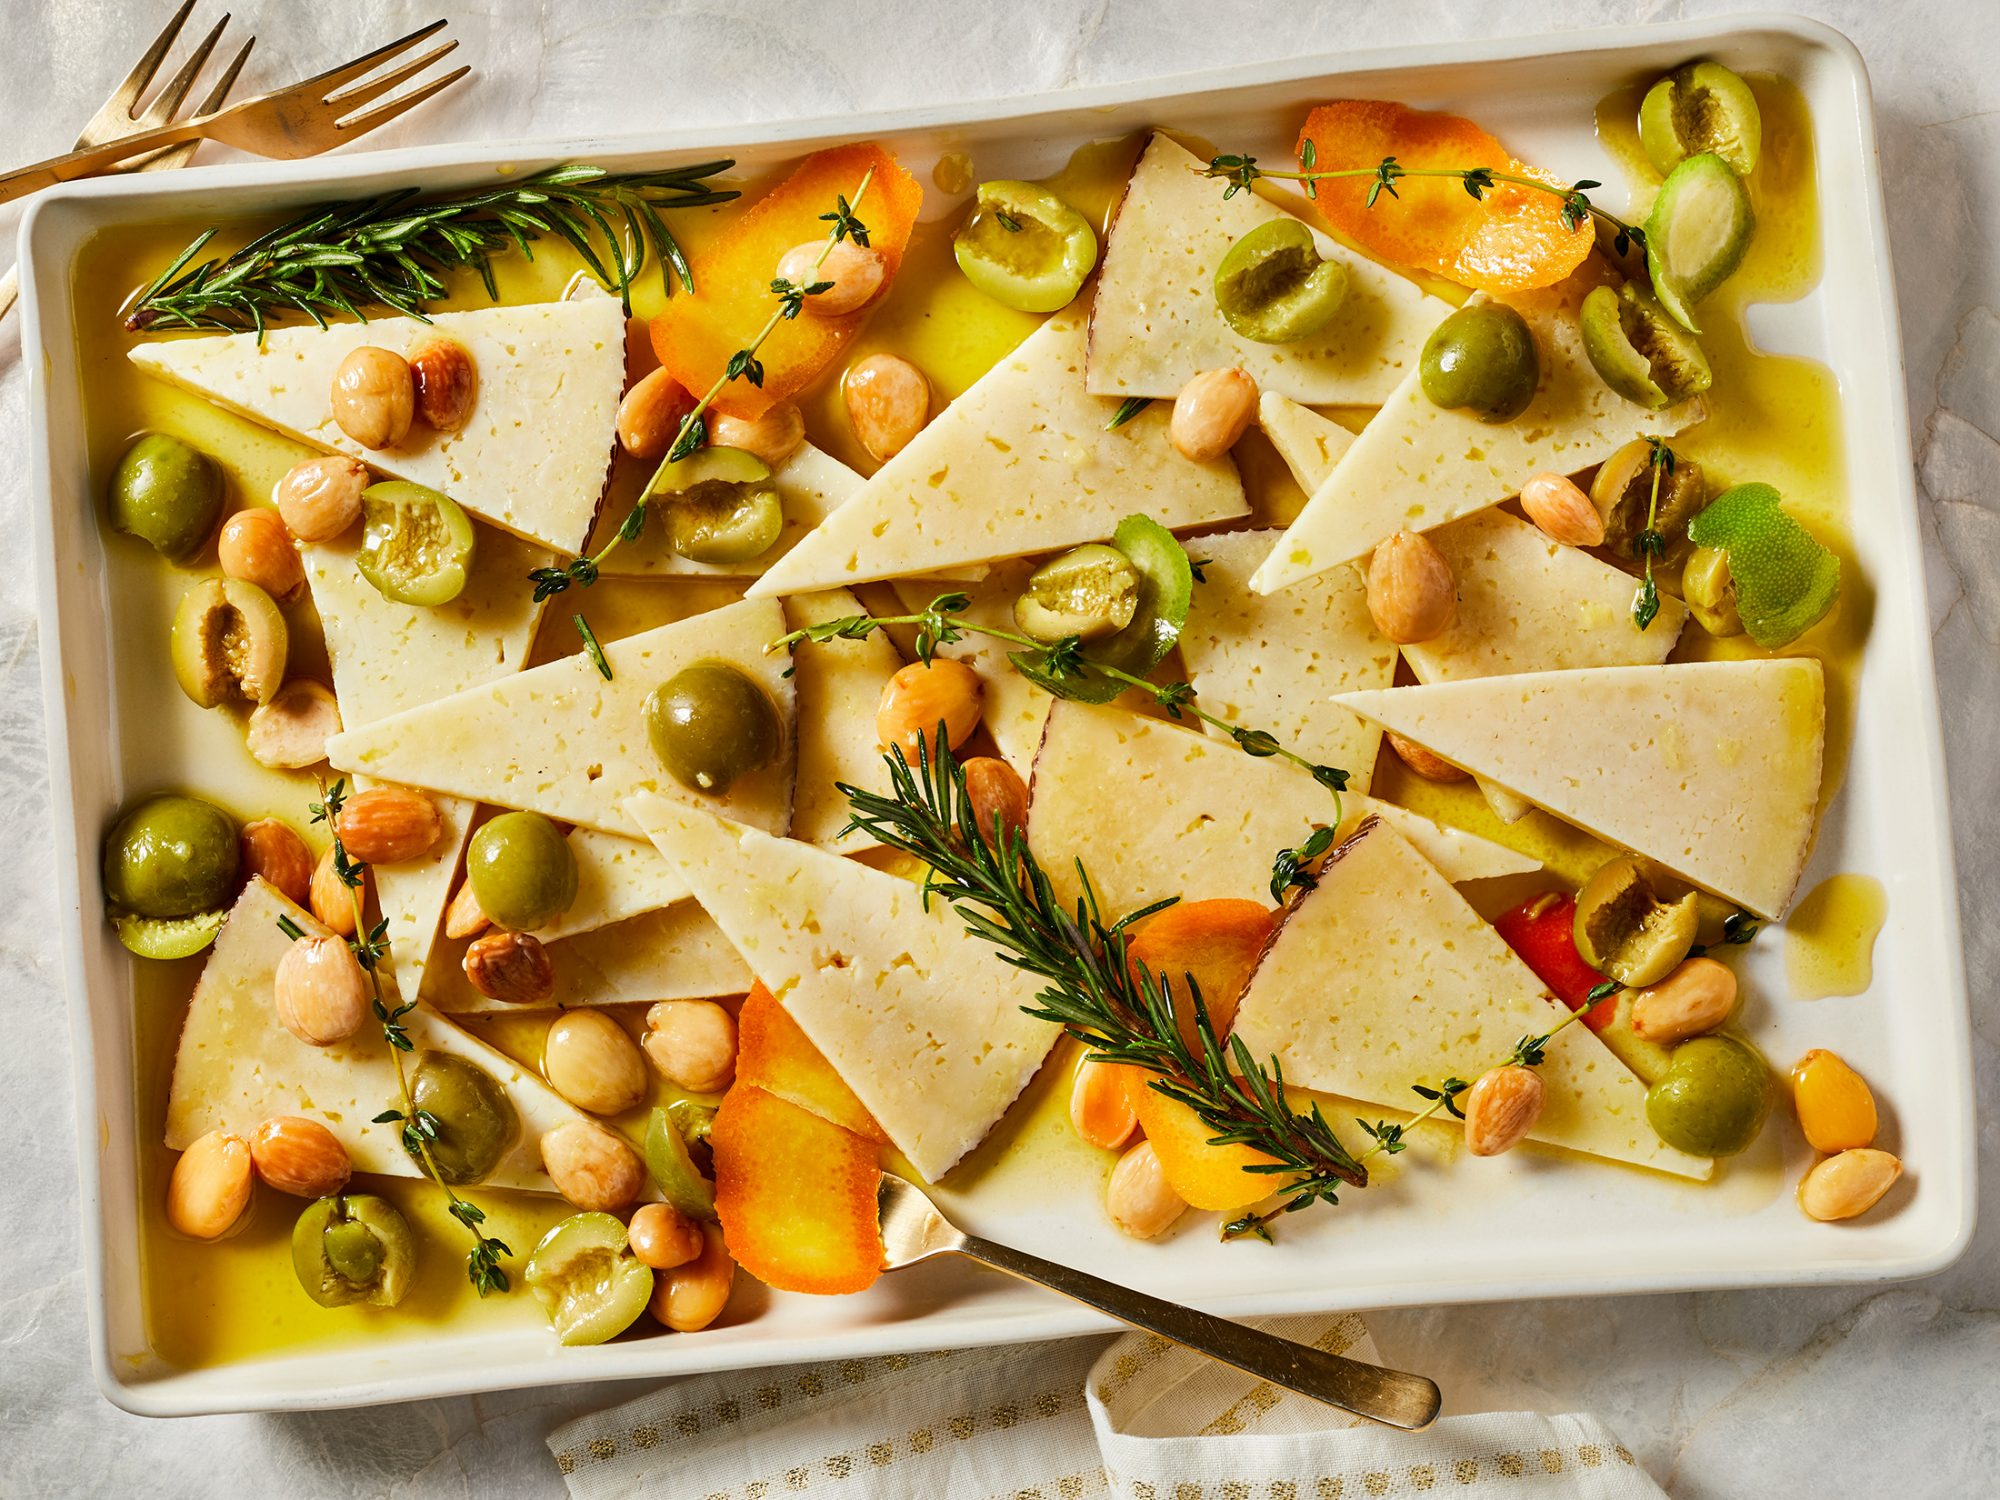 Marinated Manchego with Olives and Orange